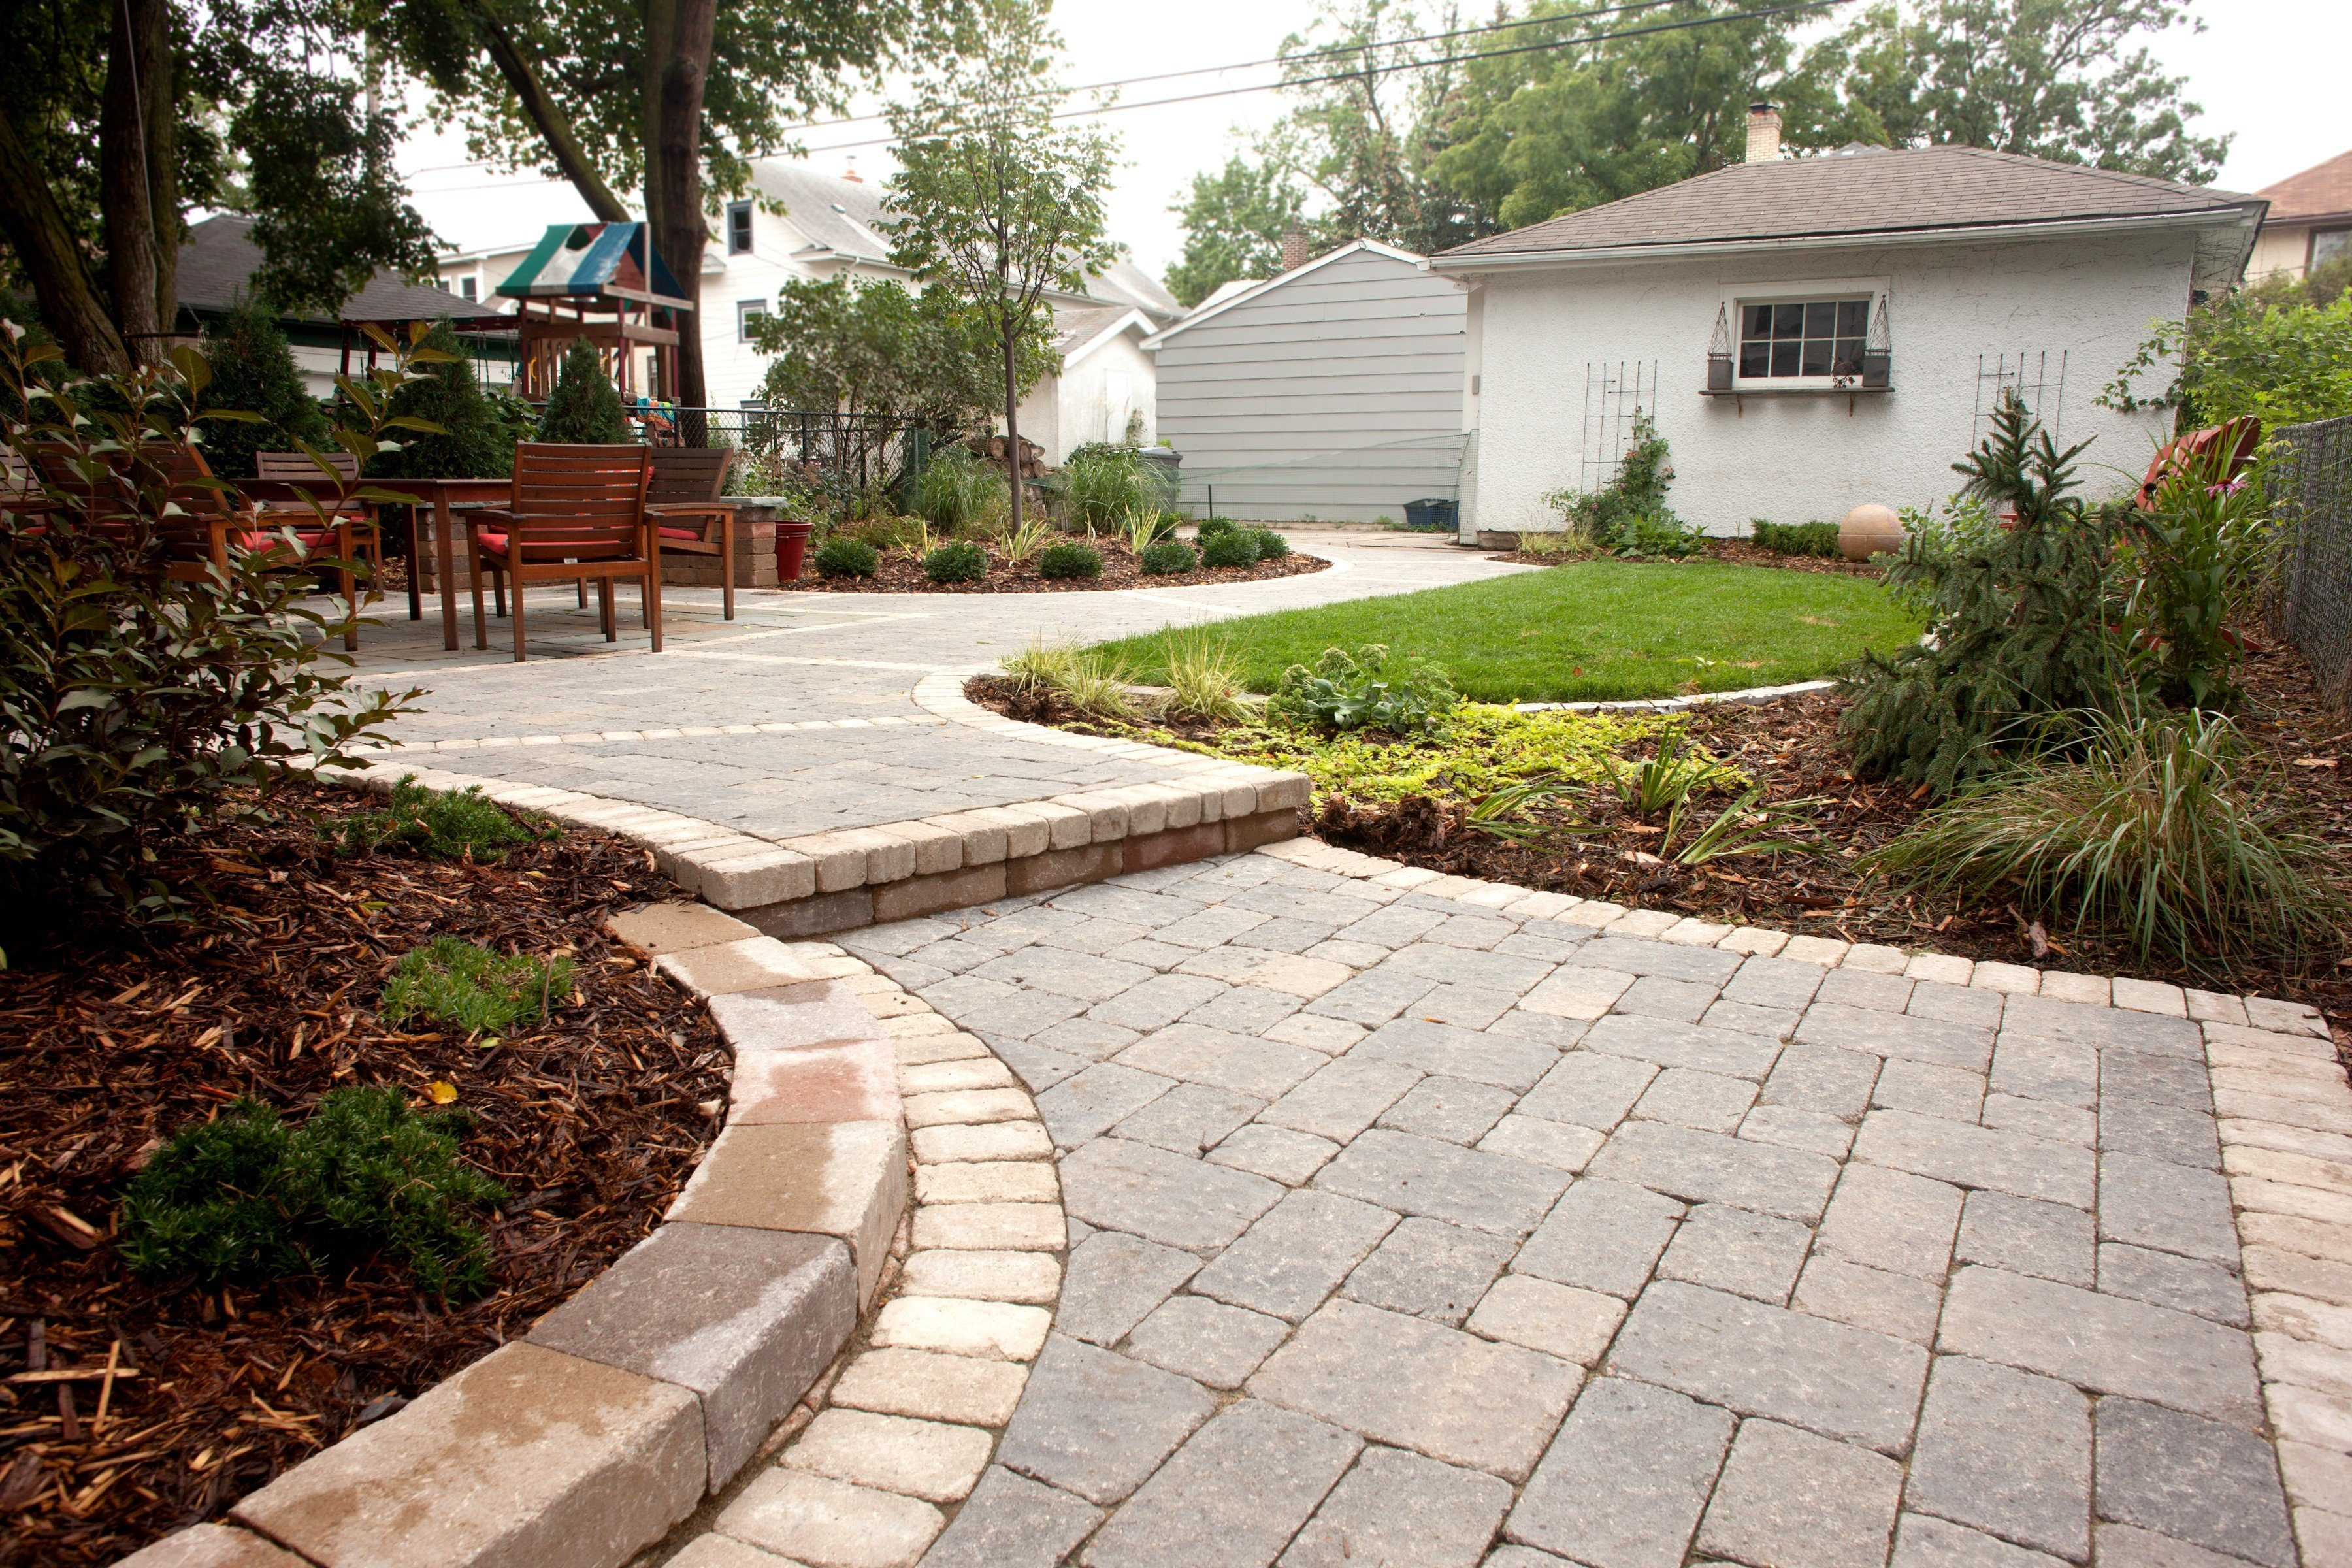 Elegant Hardscape Design U2013 From Outdoor Masterpiece To Simple Patio